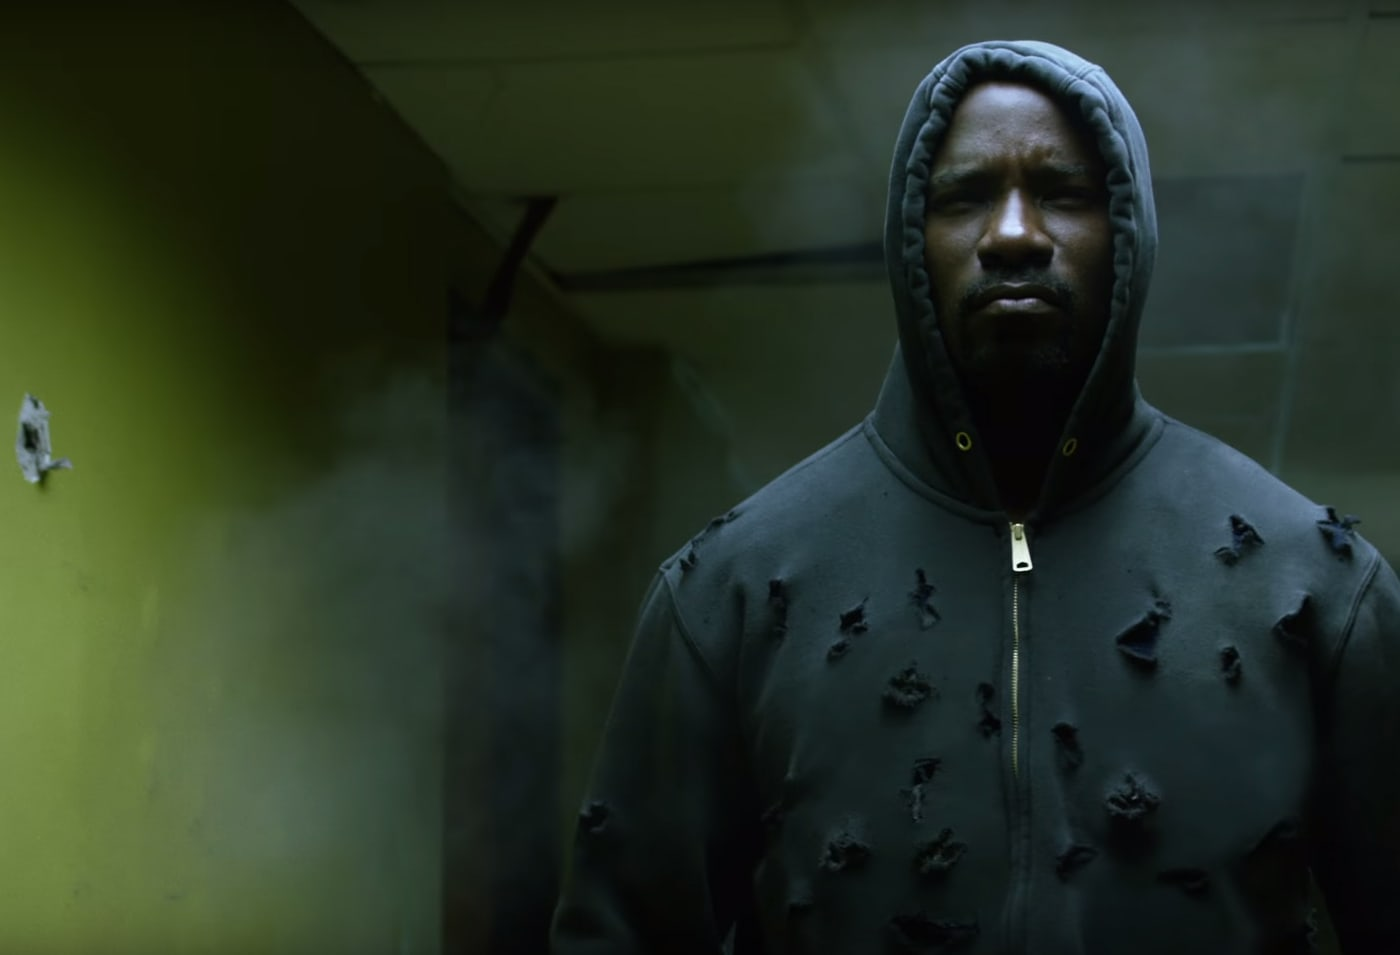 'Luke Cage' Renewed for Season 2 After 'The Defenders'